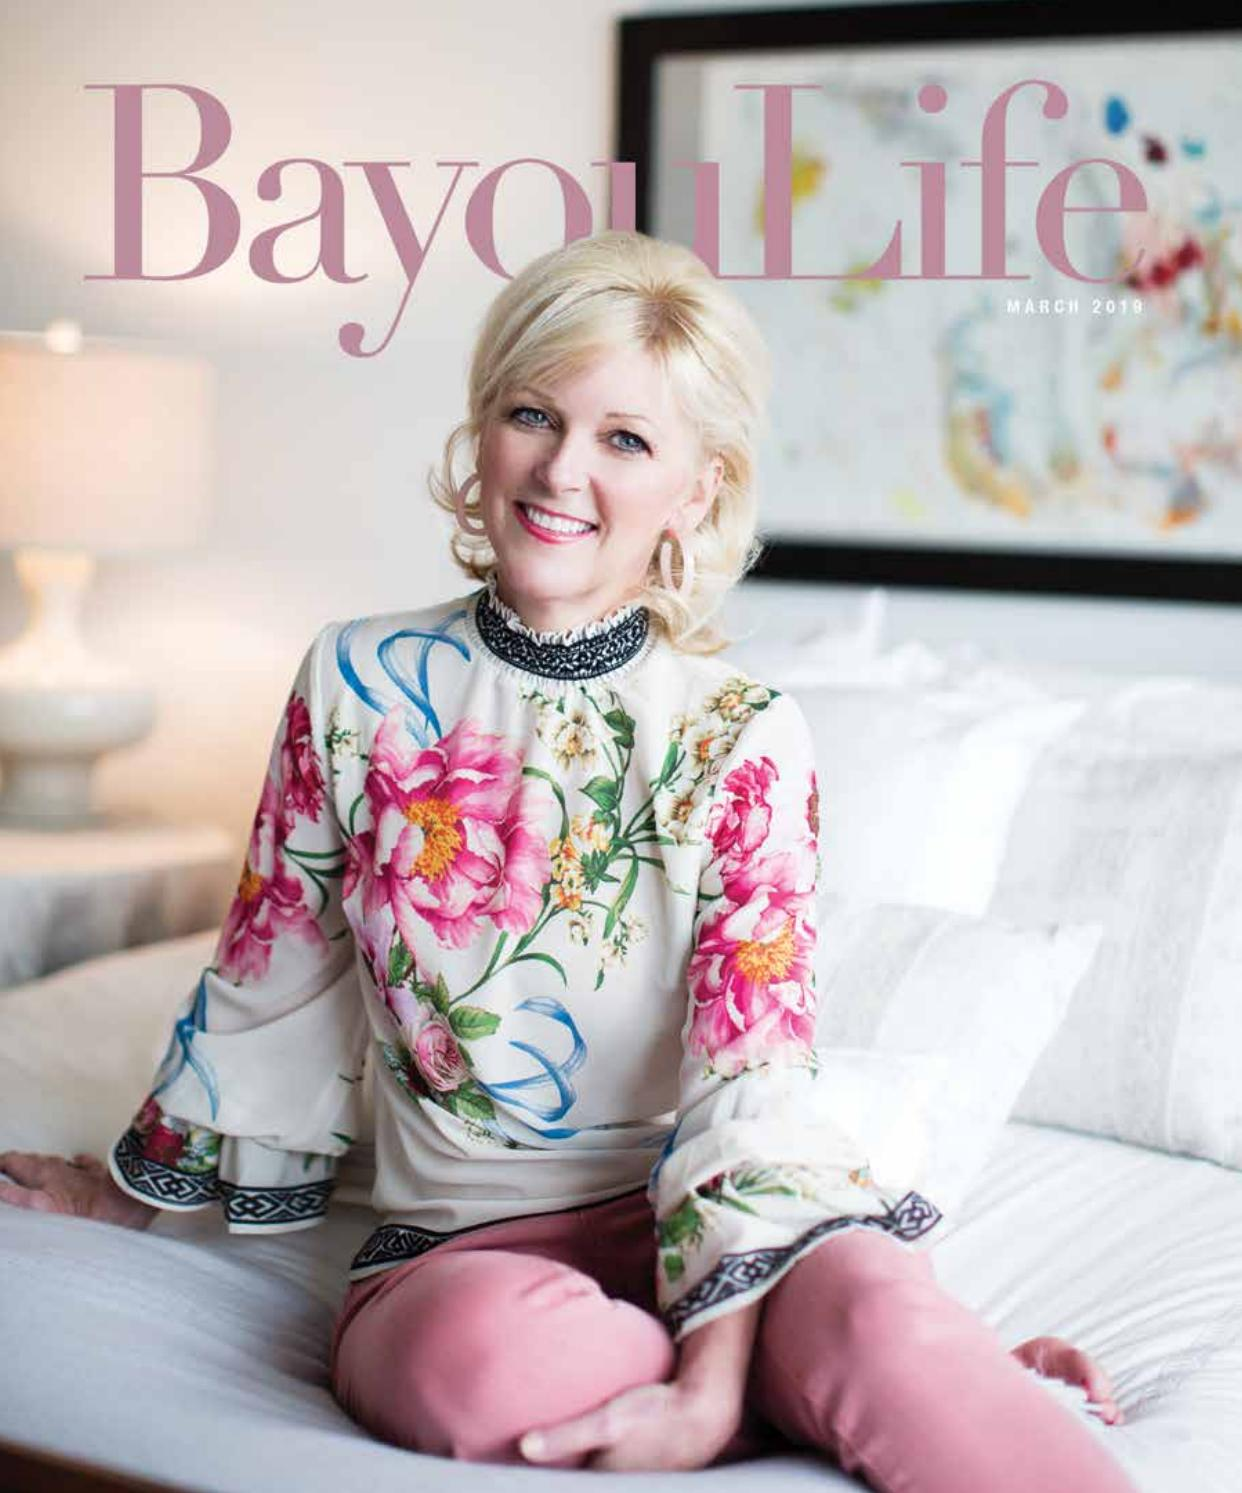 e794f805f1f7 BayouLIfe March 2019 by BayouLife Magazine - issuu